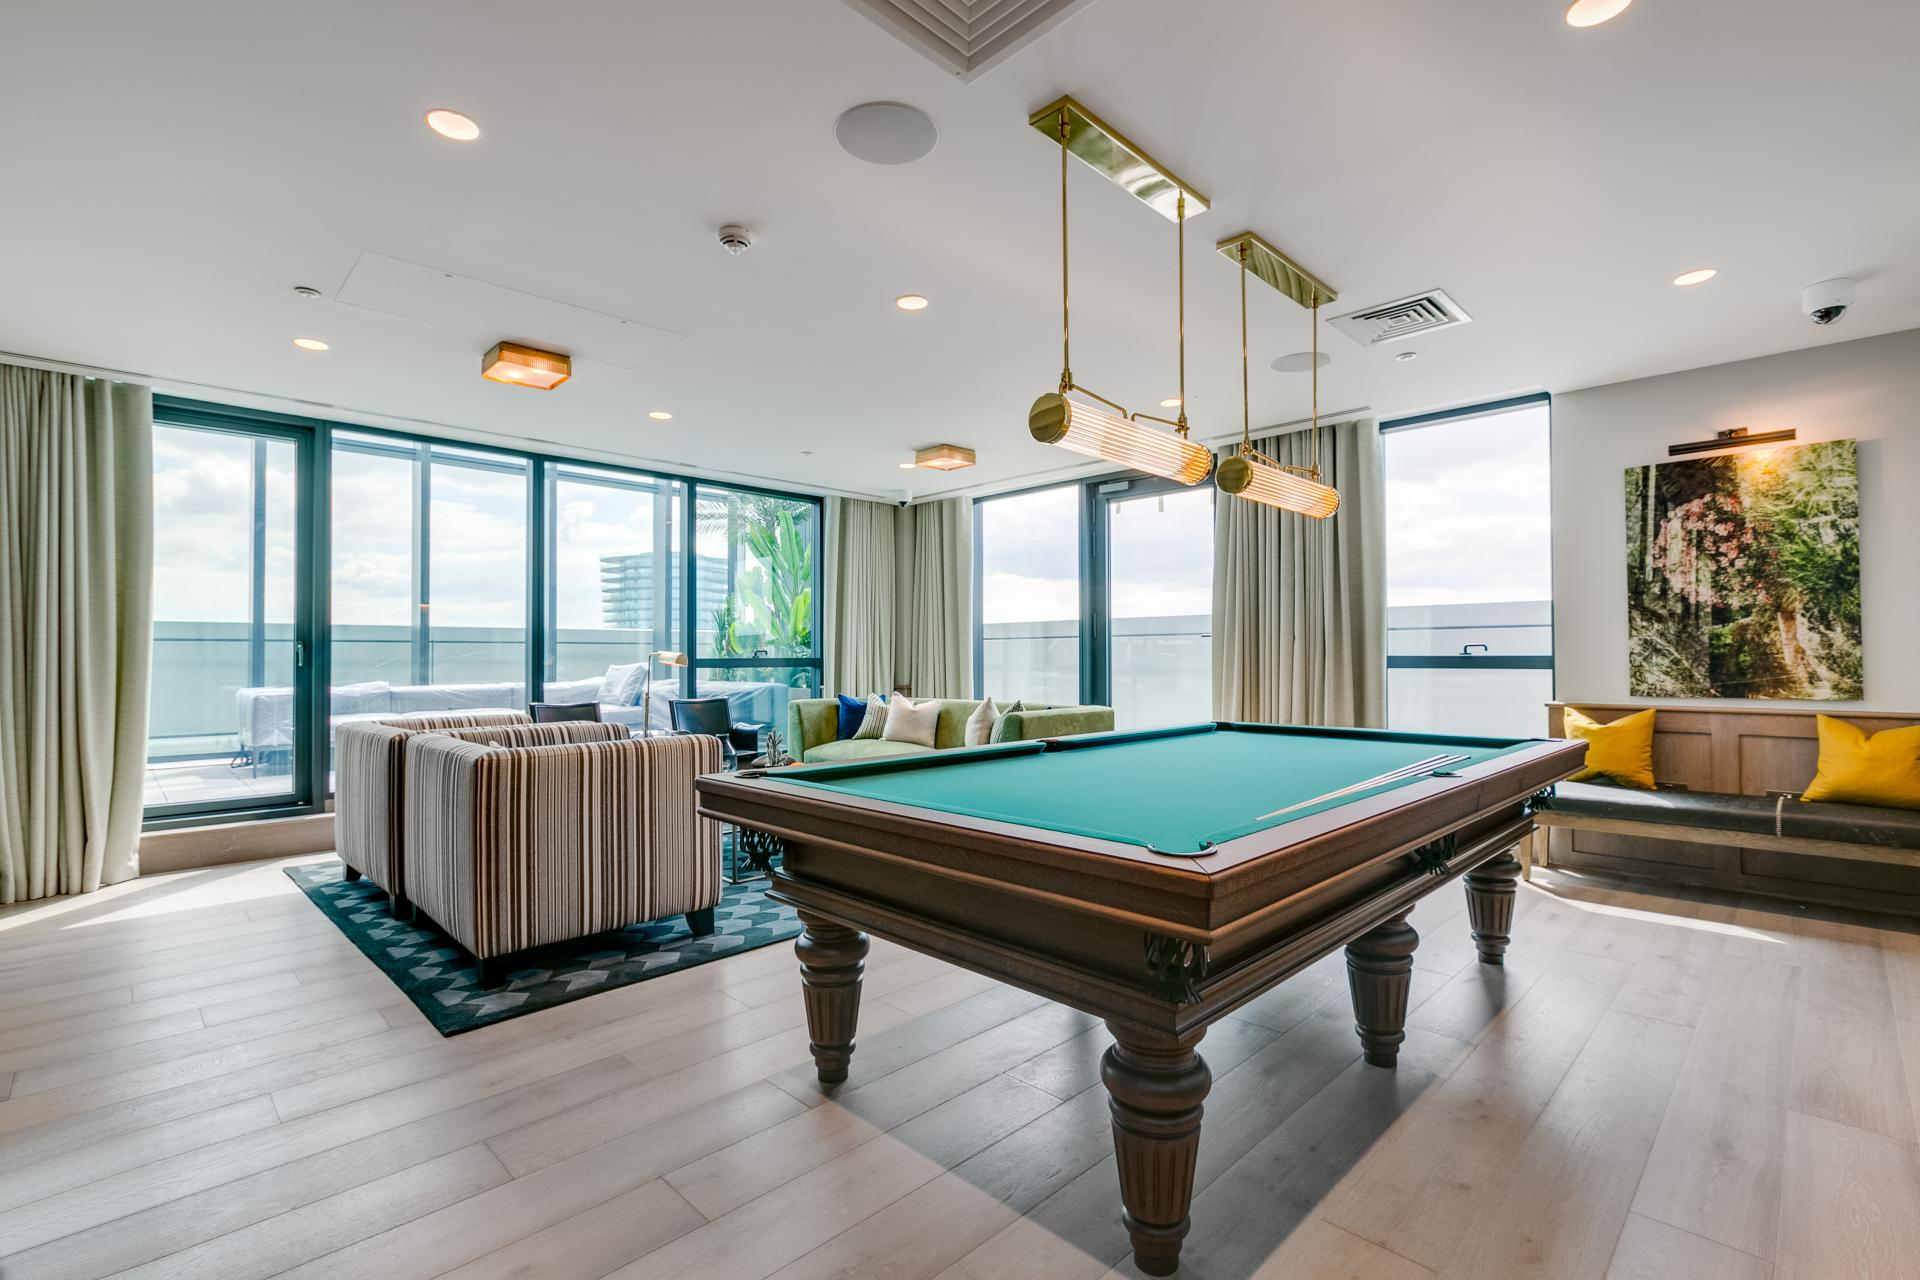 Pool table at Sailmakers Apartments